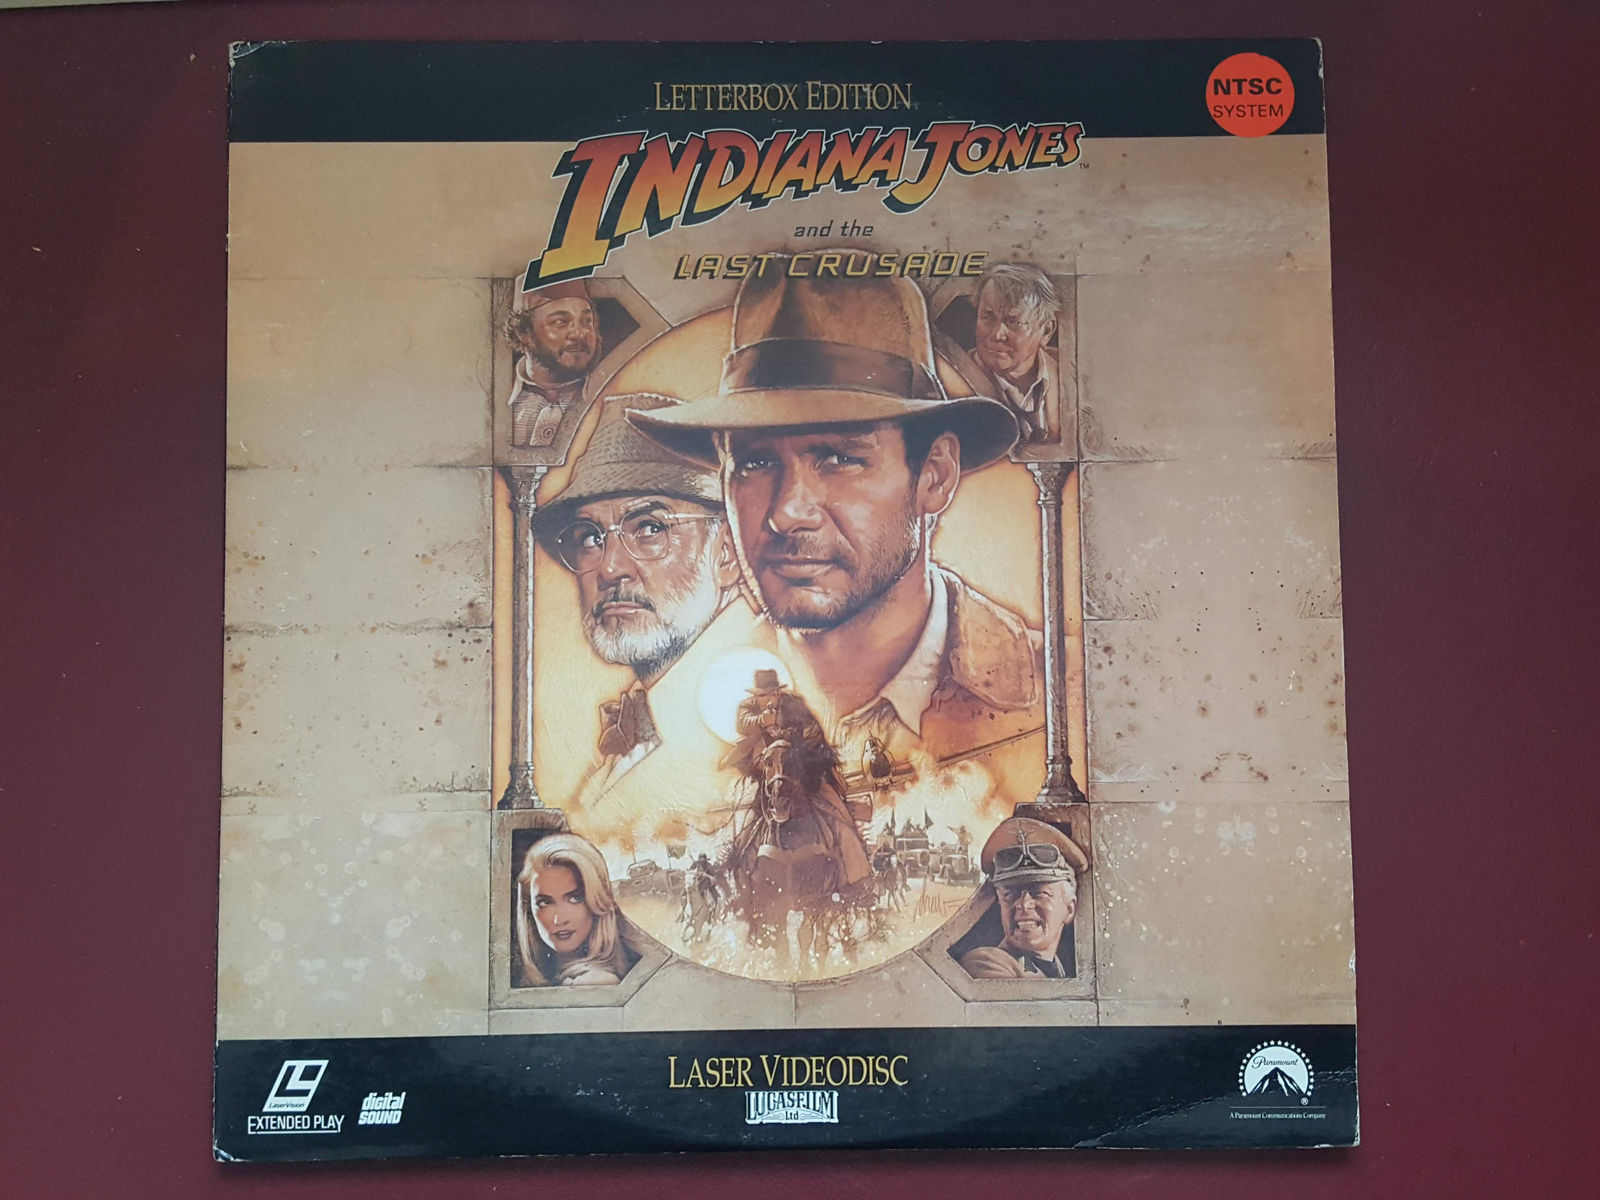 Harrison Ford - Sean Connery - Indiana Jones and the Last Crusade